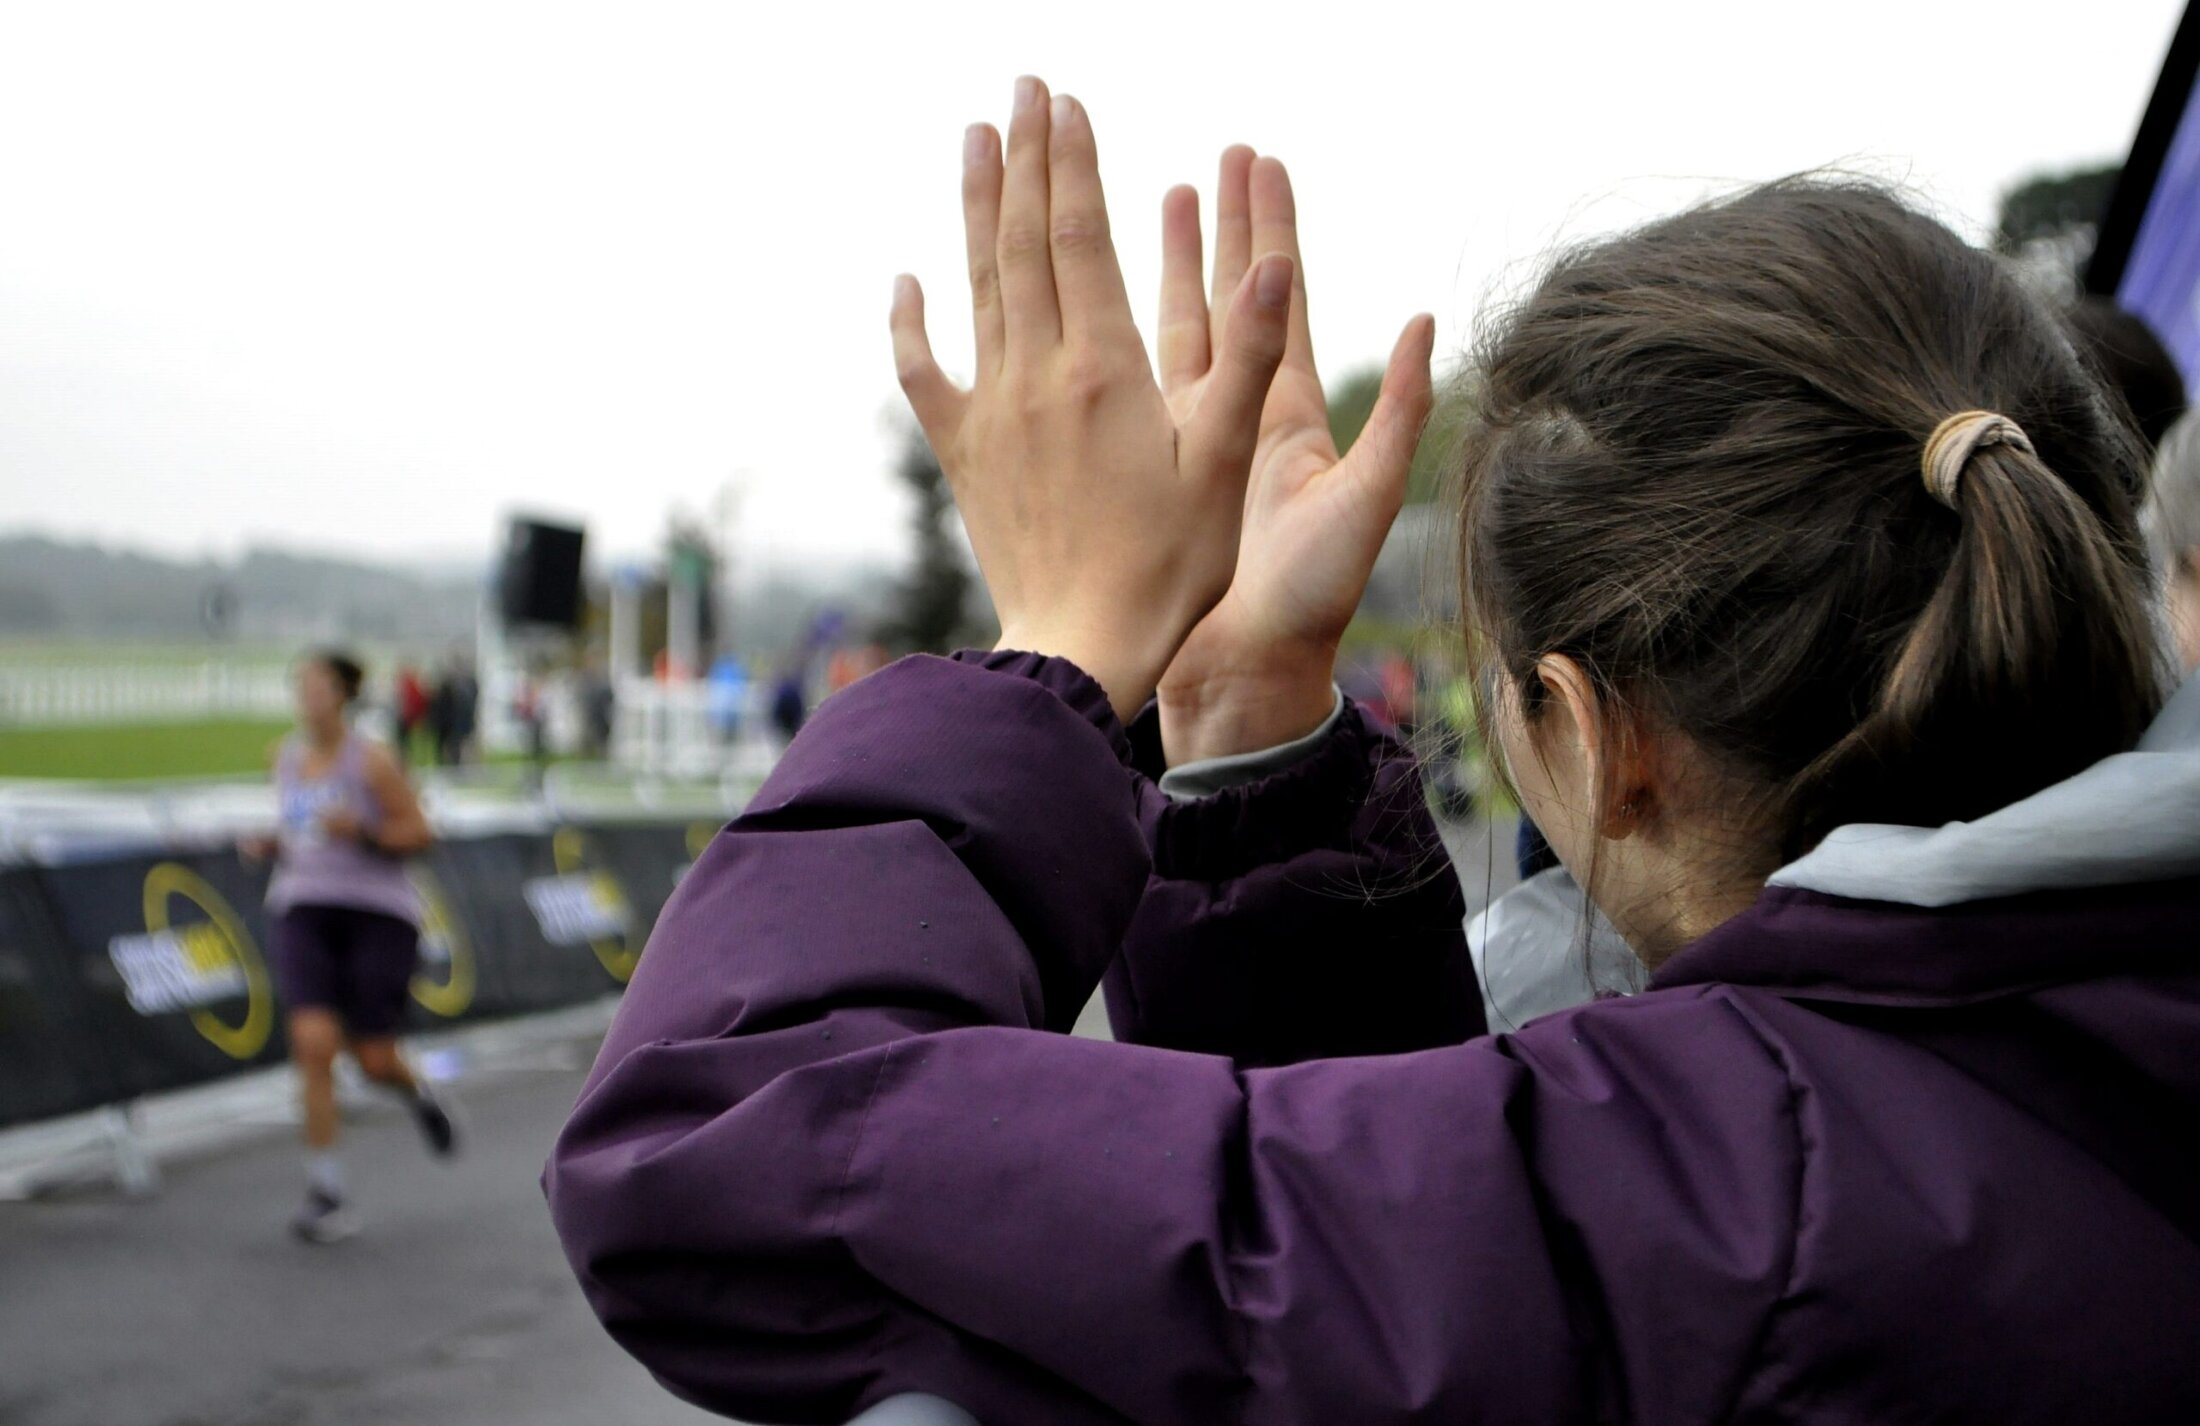 Clapping and cheering a marathon runner. From a fundraising event of a charity.